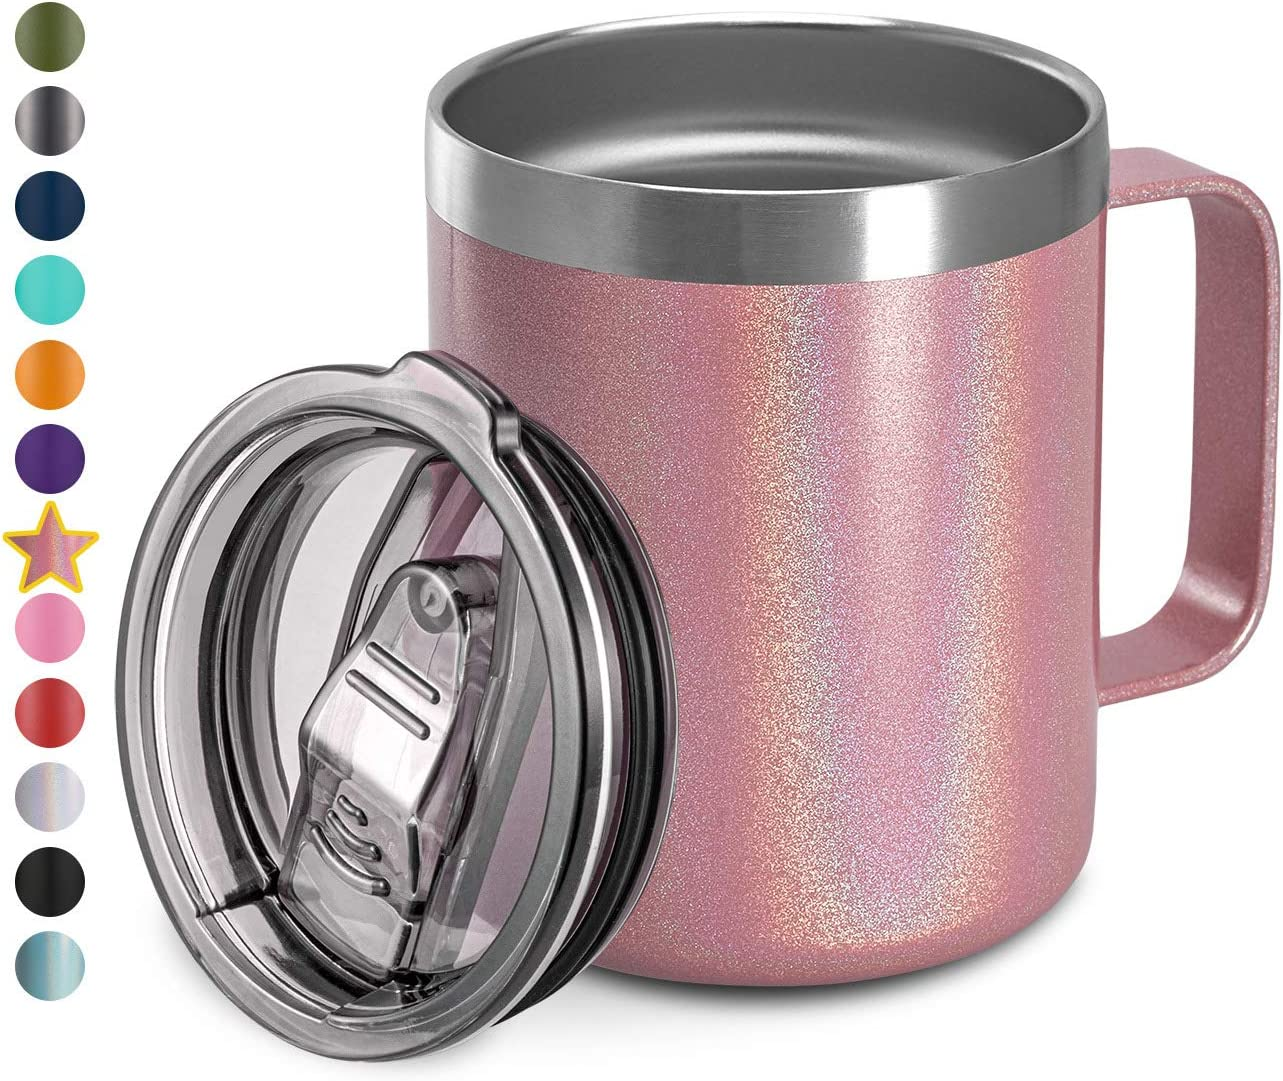 12oz Stainless Steel Insulated Coffee Mug with Handle, Double Wall Vacuum Travel Mug, Tumbler Cup with Sliding Lid, PINK GLITTER